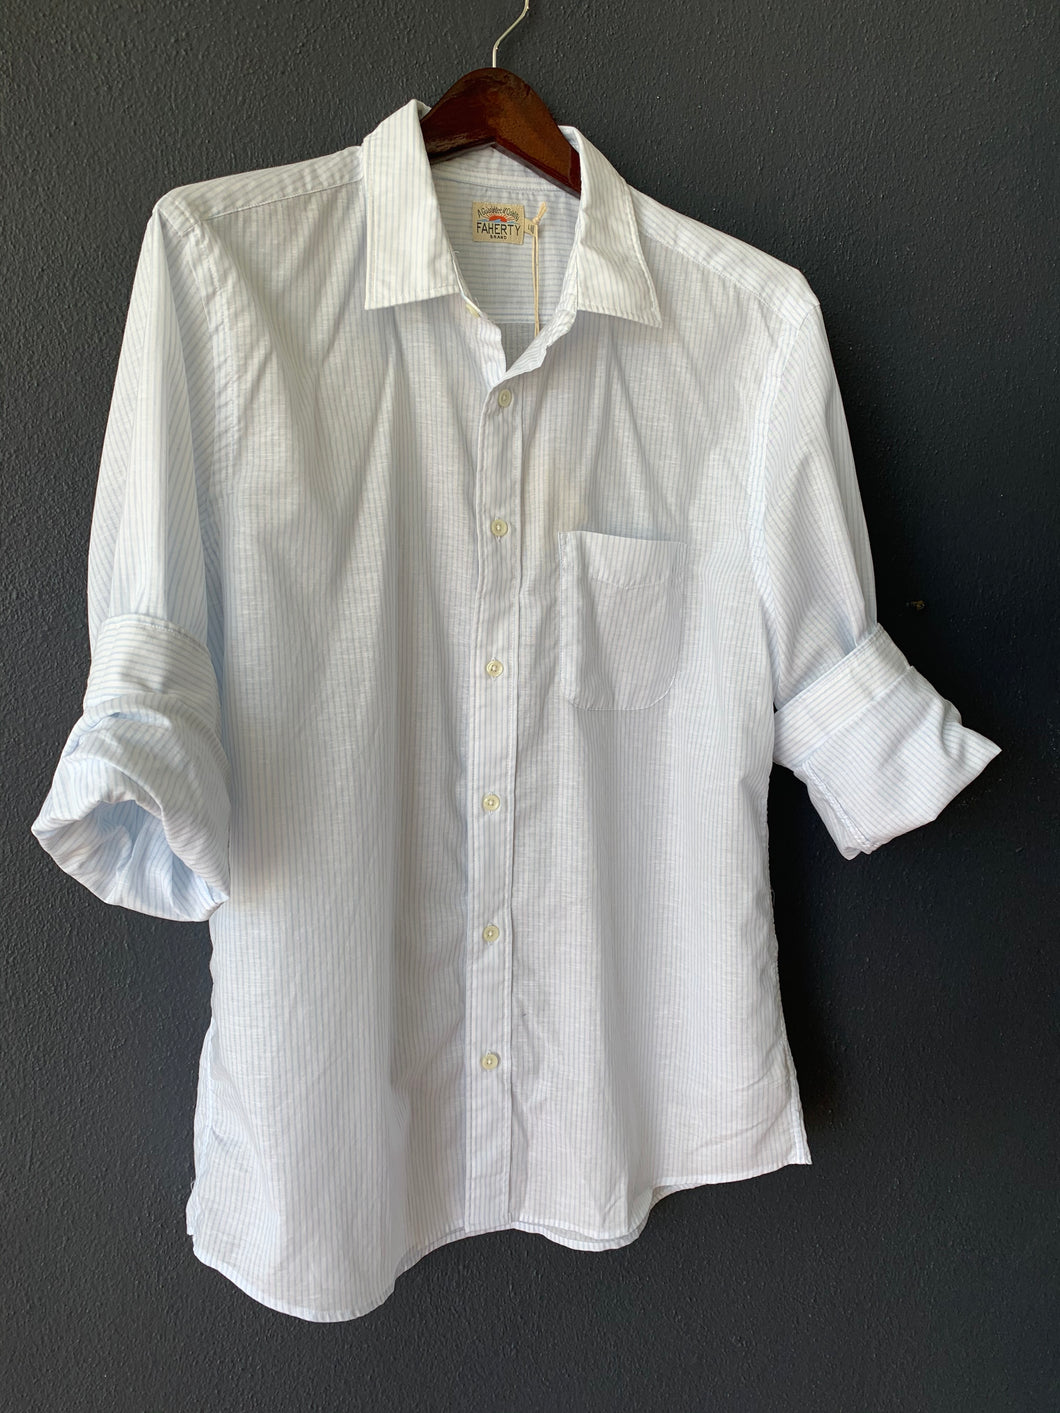 Cloud Summer Blend Shirt Blue/White Pinstripe